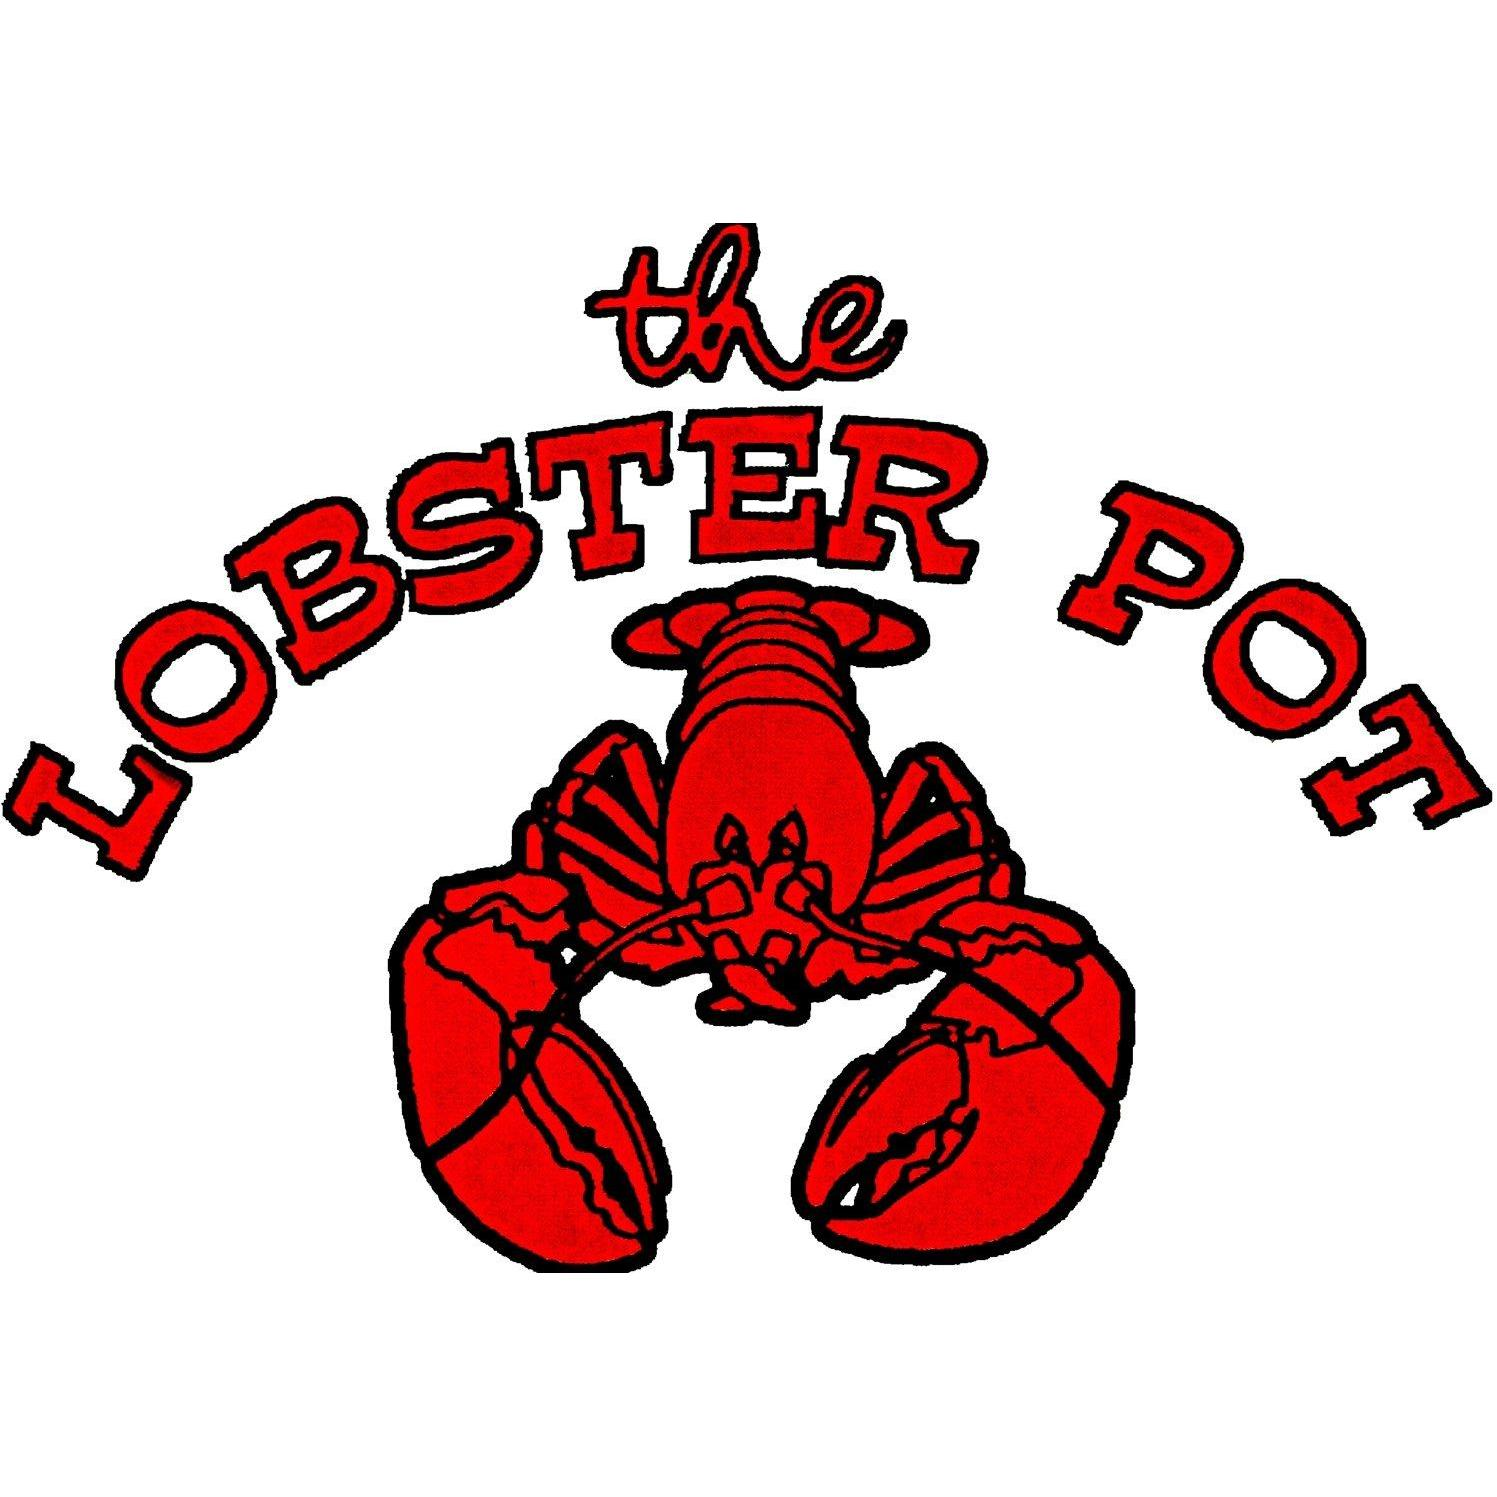 Lobster Pot Restaurant 5157 Ocean Blvd. Sarasota, FL Seafood - MapQuest